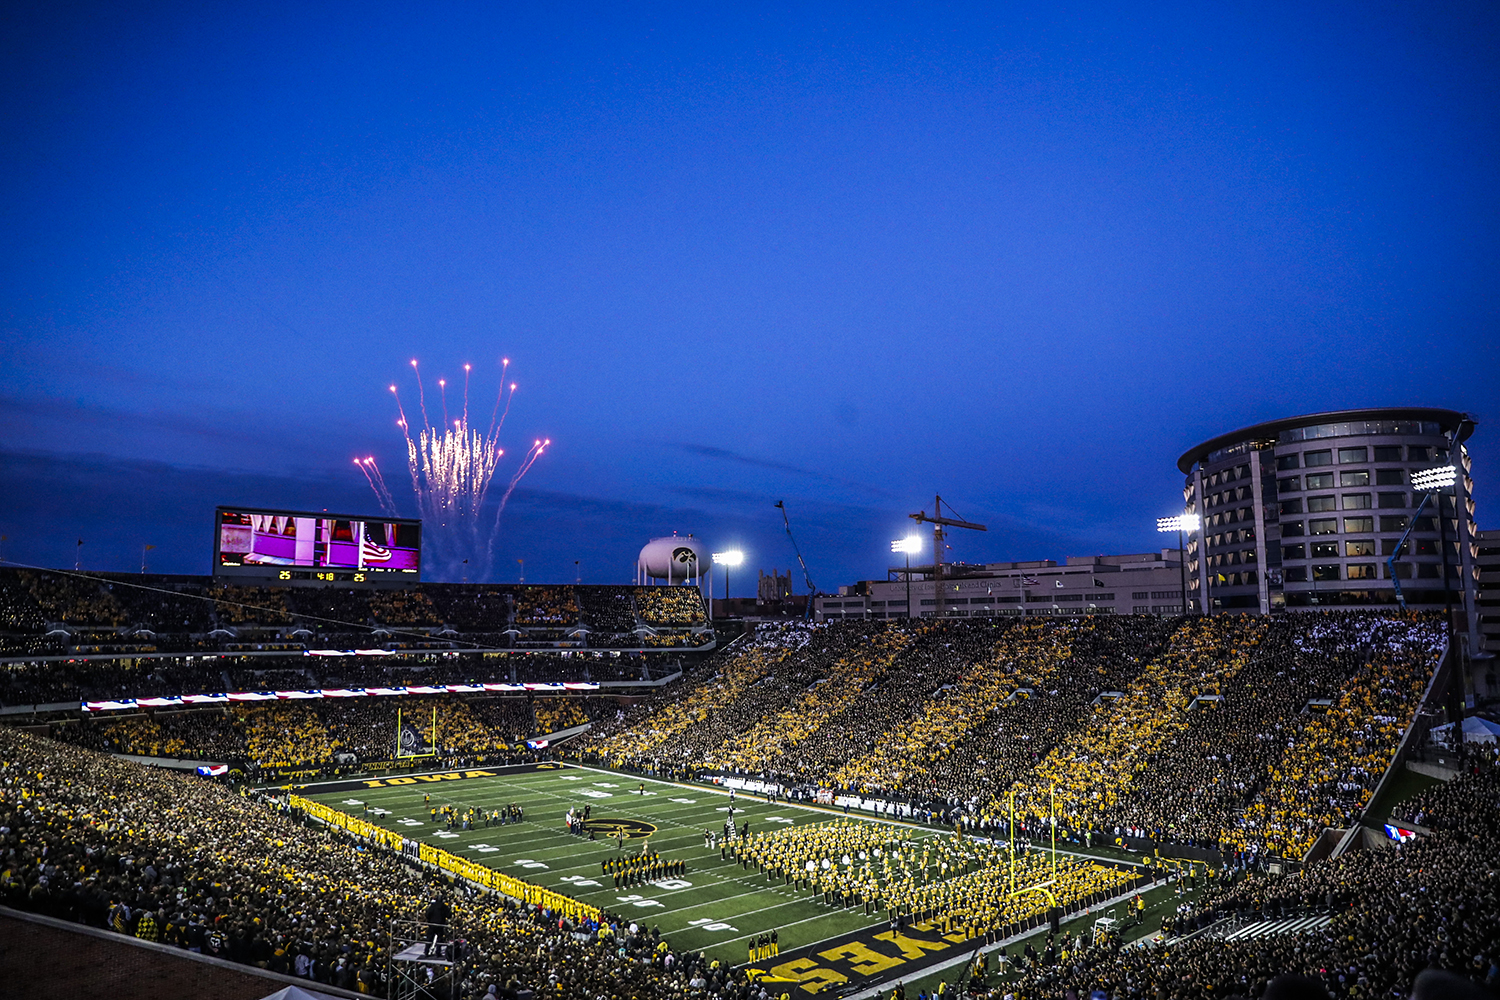 Fans prepare for the Iowa football game against Penn State in Iowa City on Saturday, Oct. 12, 2019. The Nittany Lions defeated the Hawkeyes 17-12.